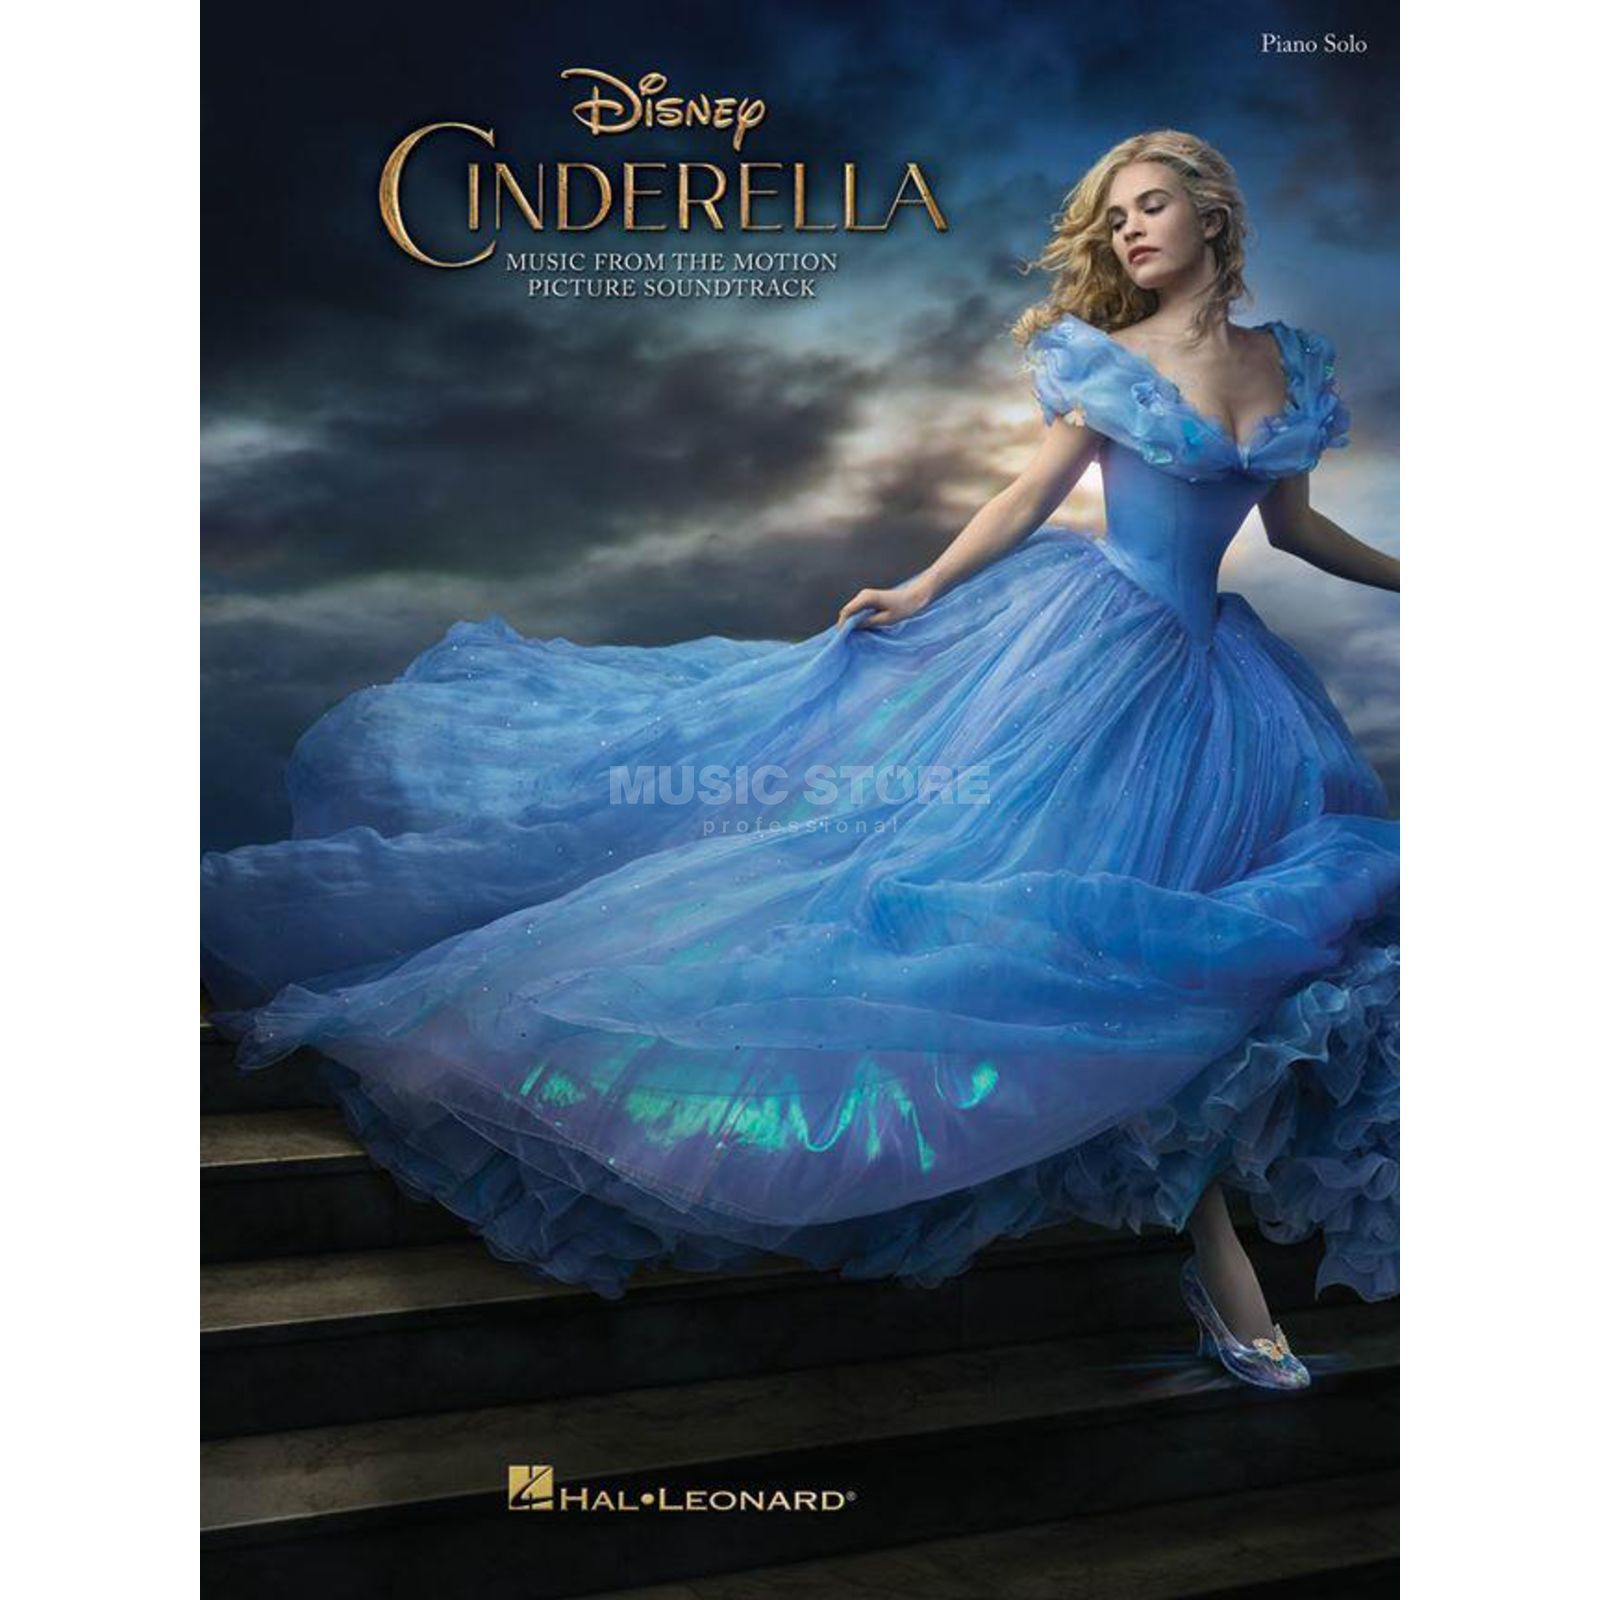 Hal Leonard Cinderella: Music From The Motion Picture Soundtrack Produktbillede